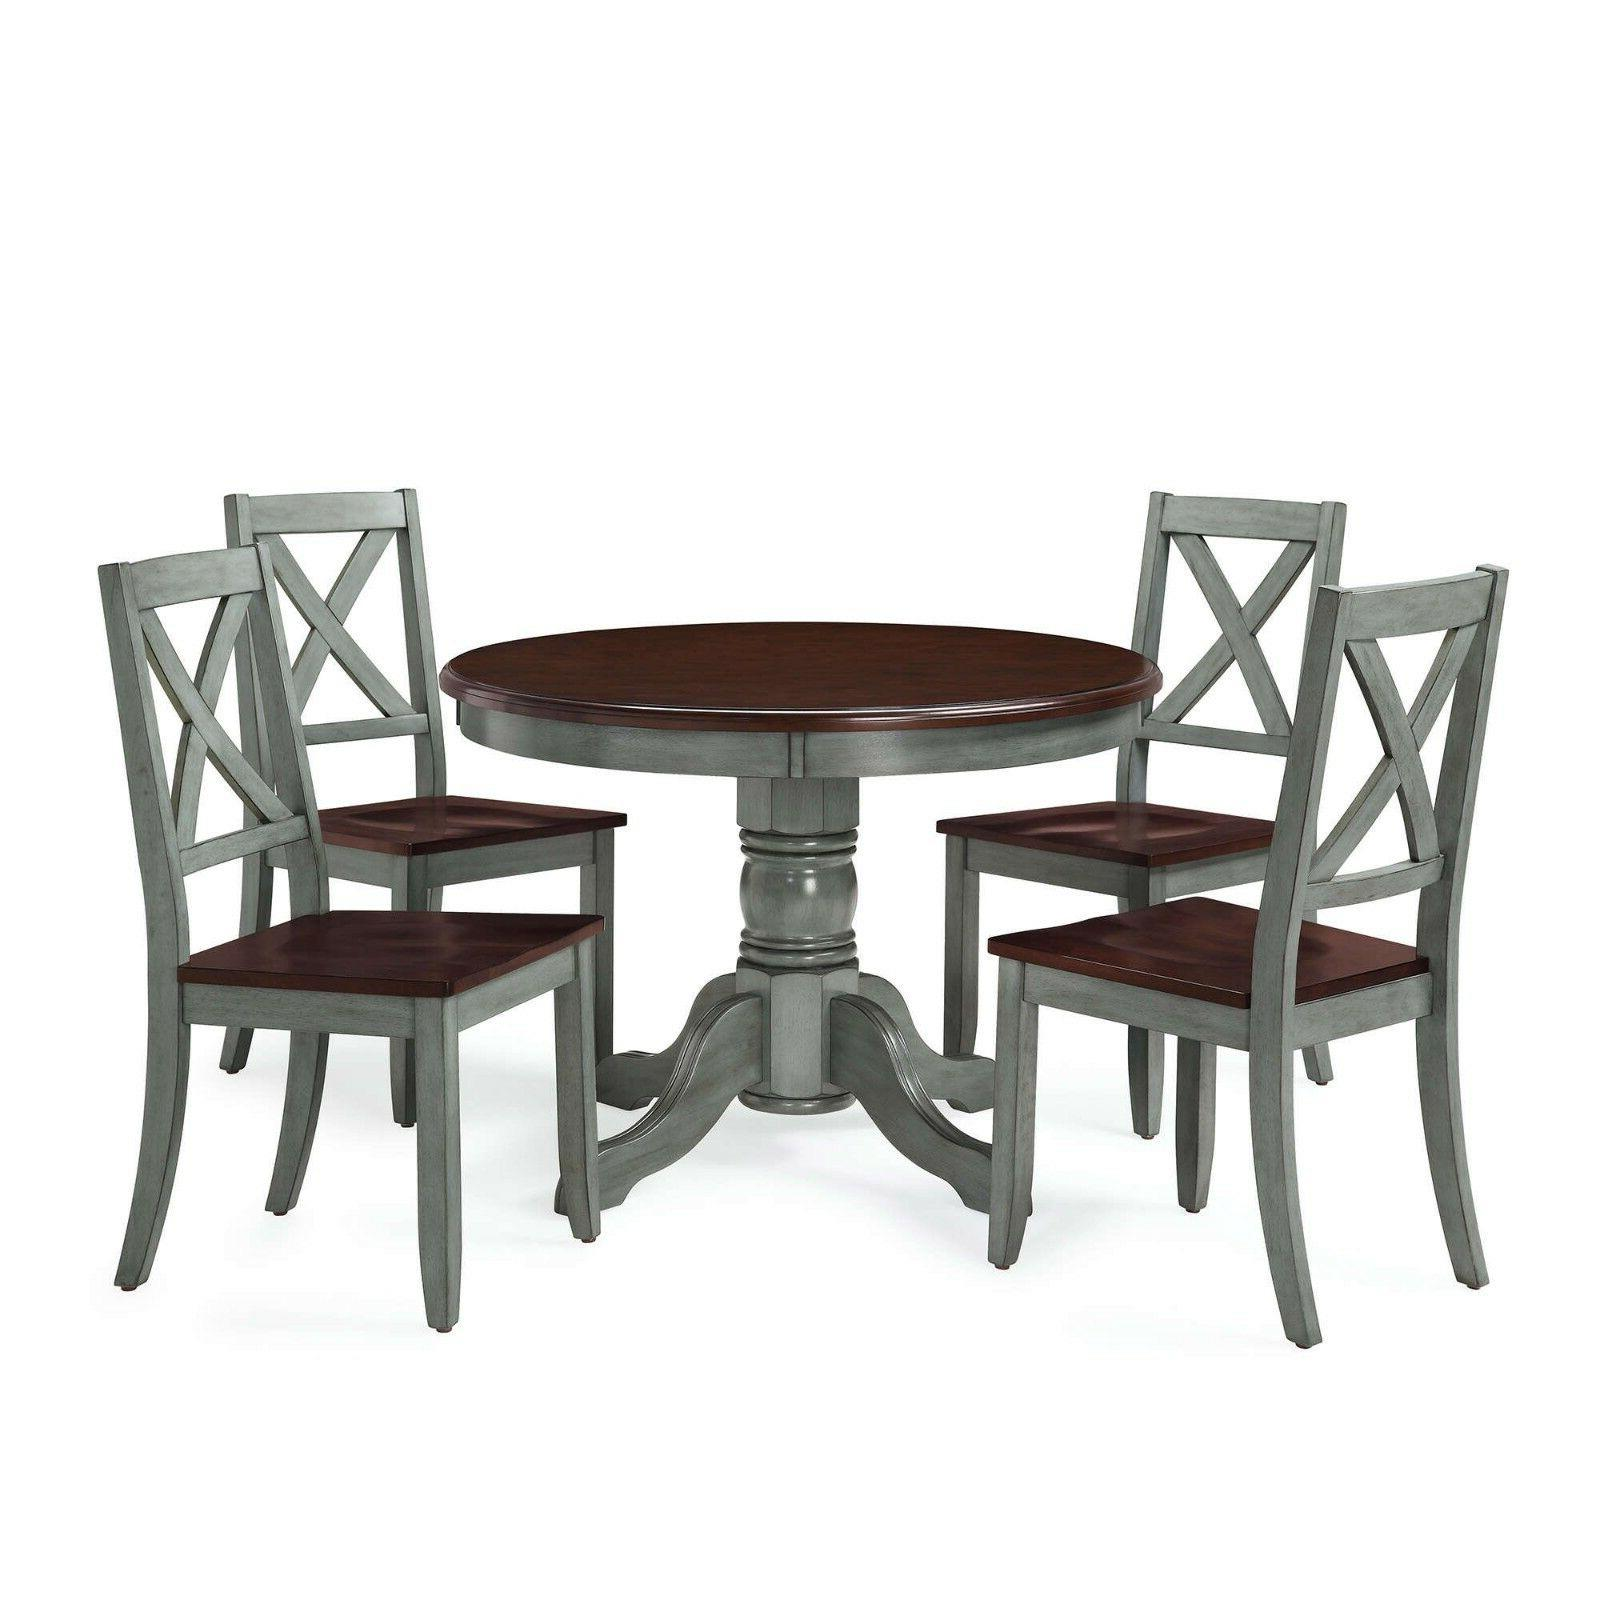 Farmhouse Dining Table Set Rustic Round Kitchen Tables Chairs